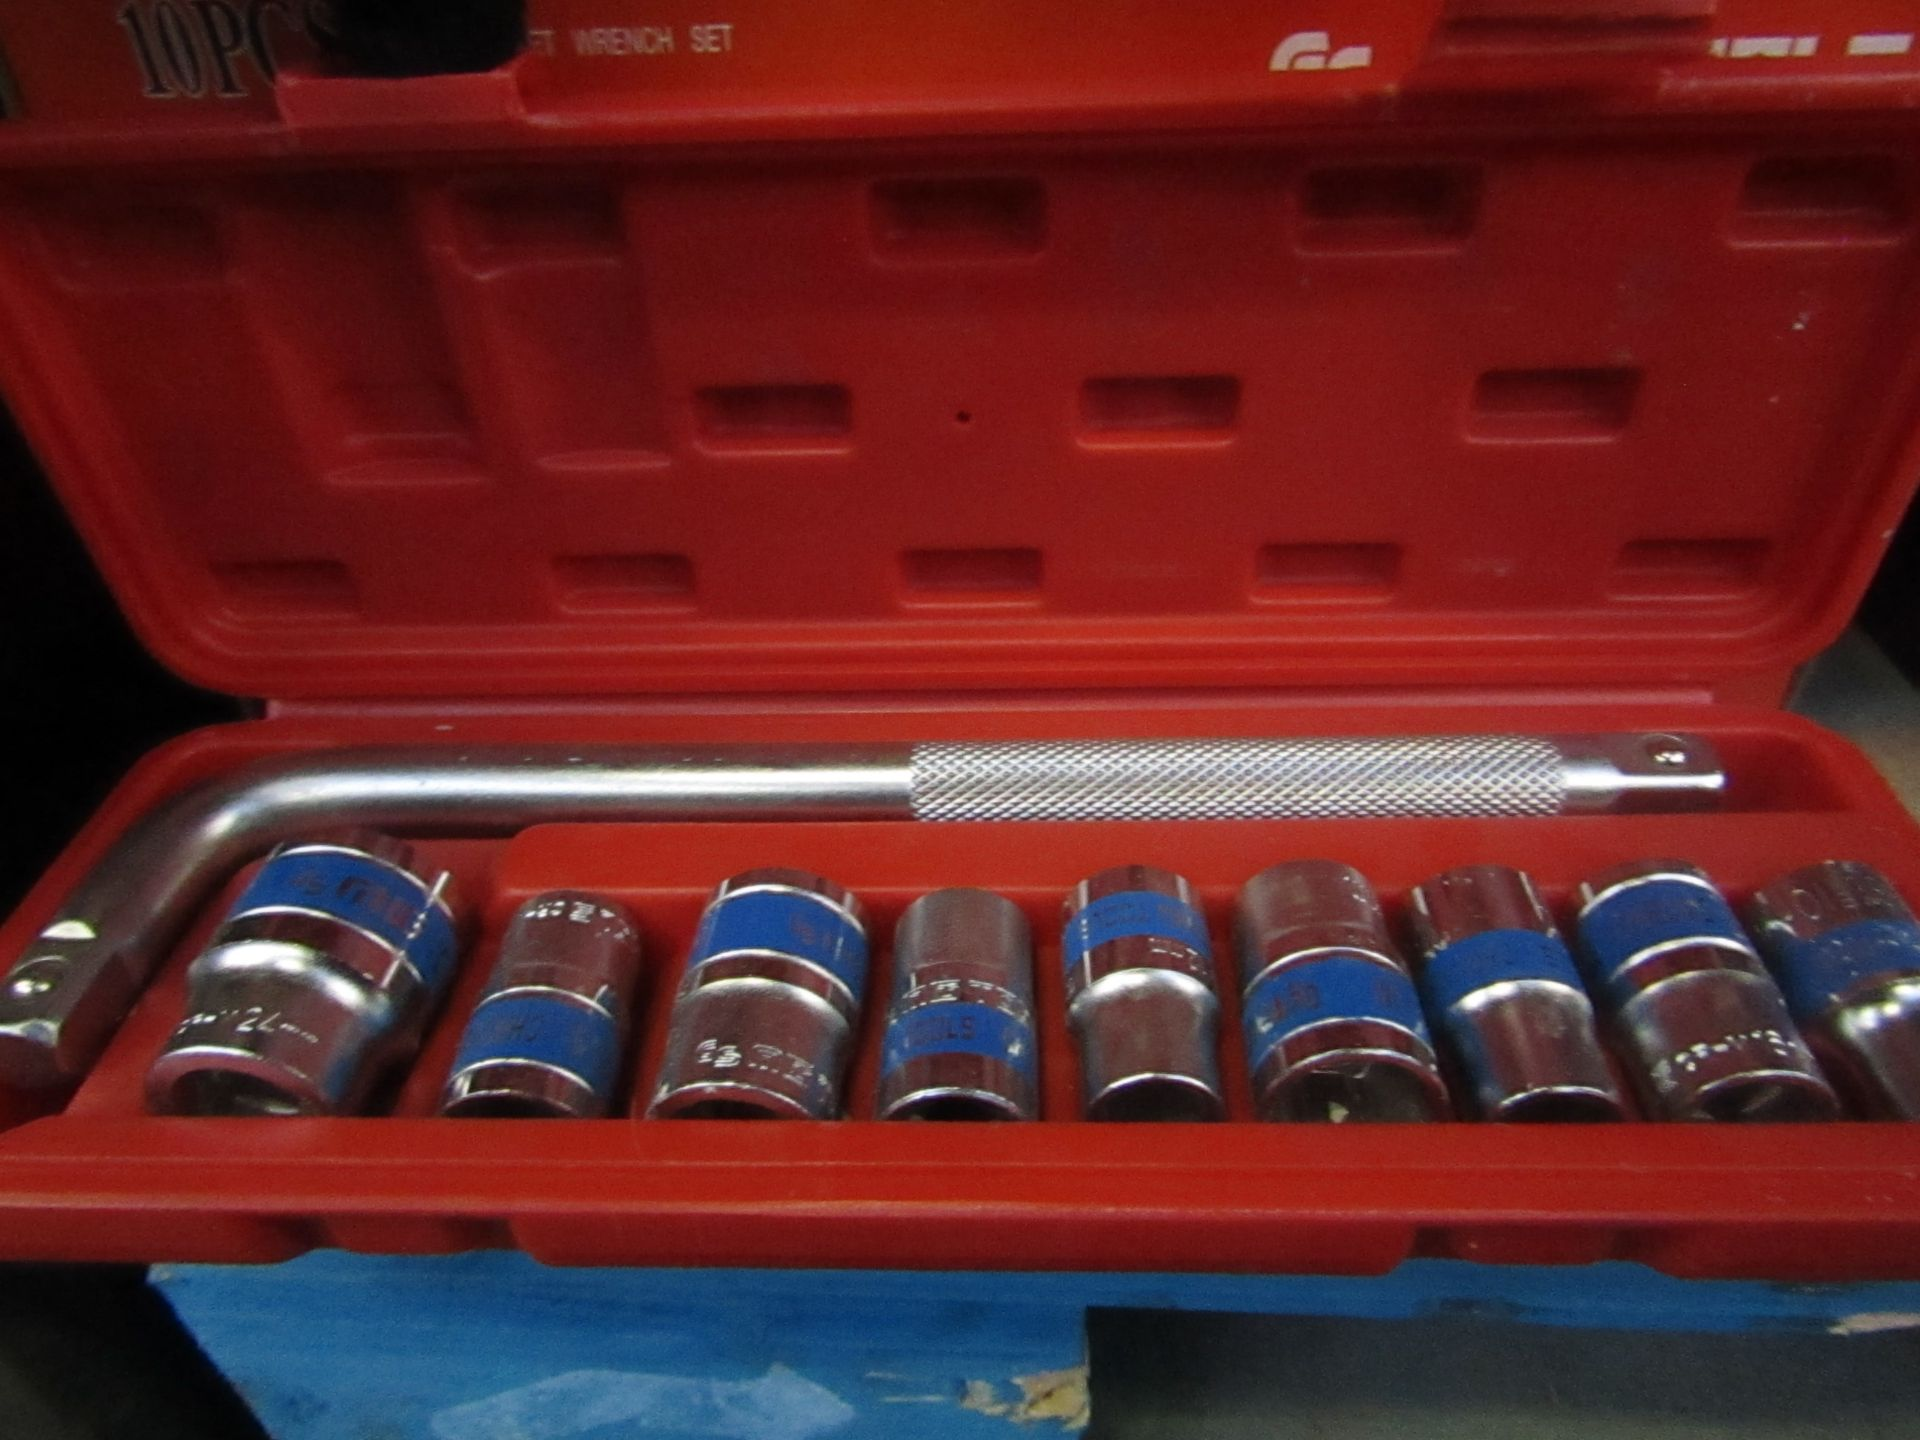 GS MIG Tools - 10 Piece 1/2 Socket Wrench Set ChromeVanadium - All New & Boxed.